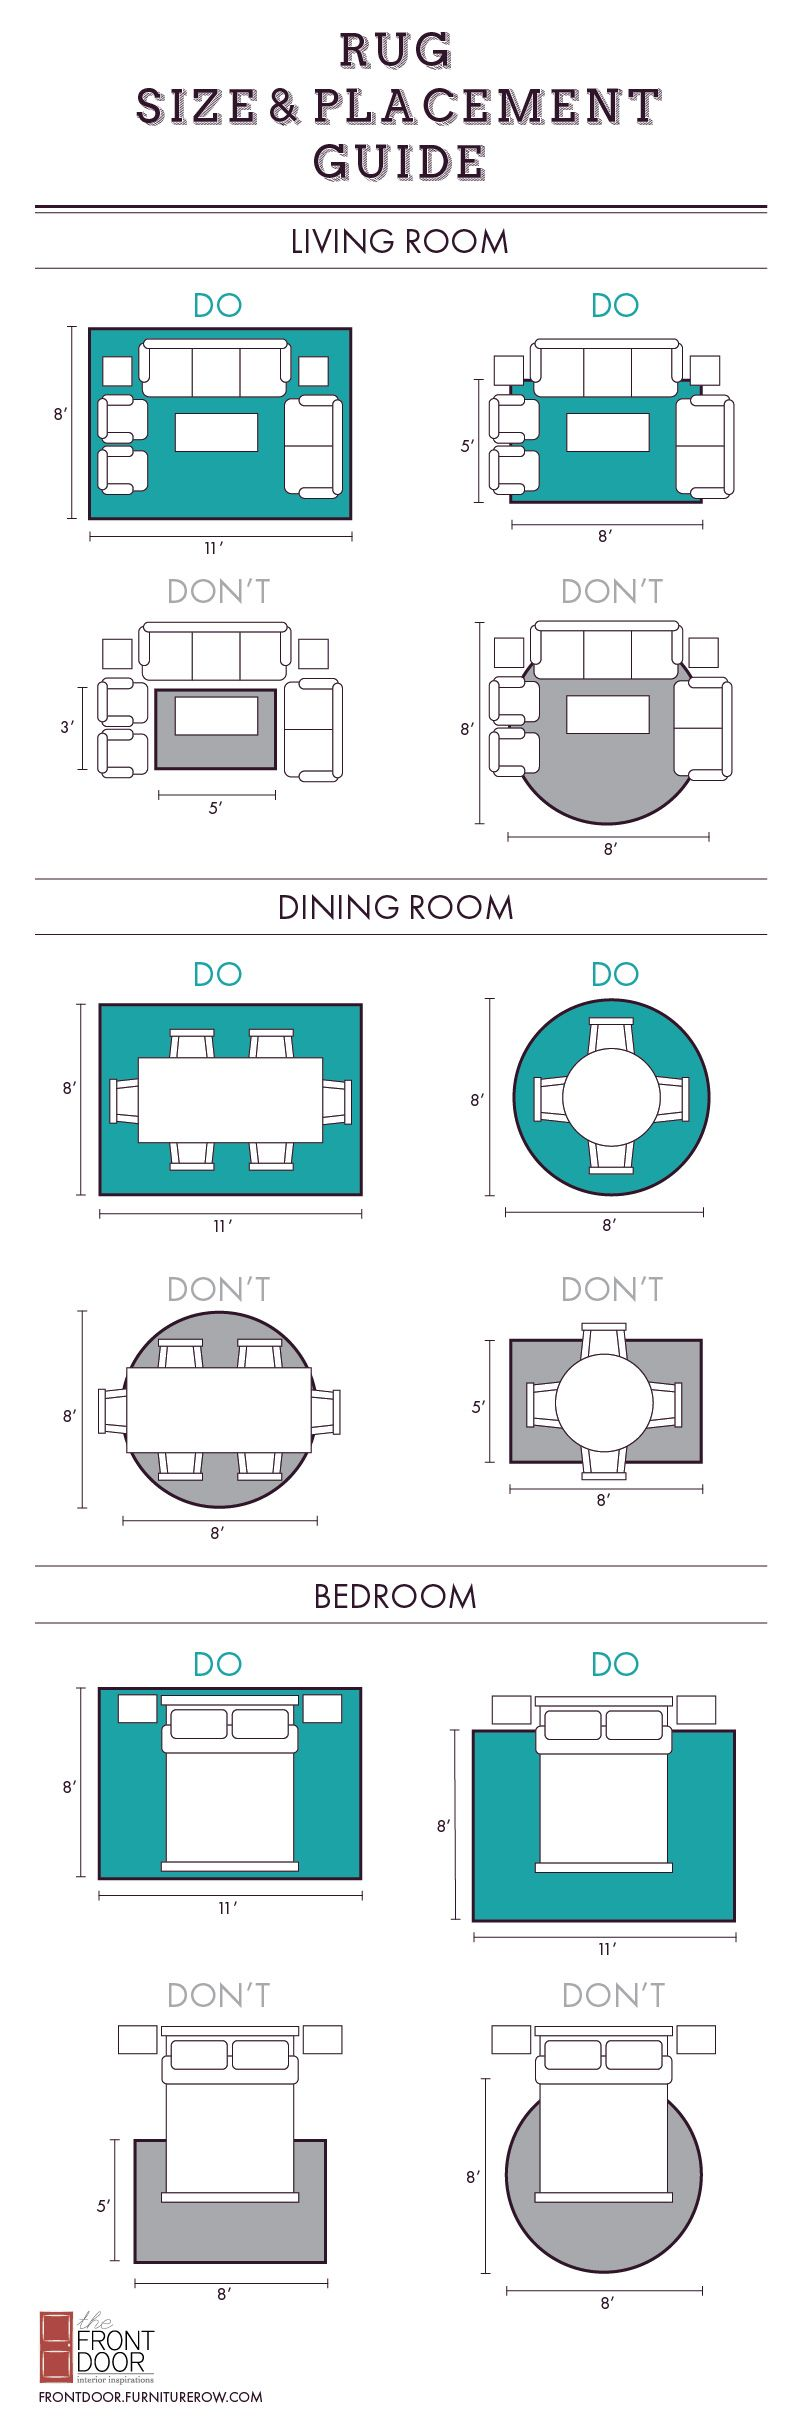 PRINTABLE Area Rug Size And Placement Guide On The Front Door Blog